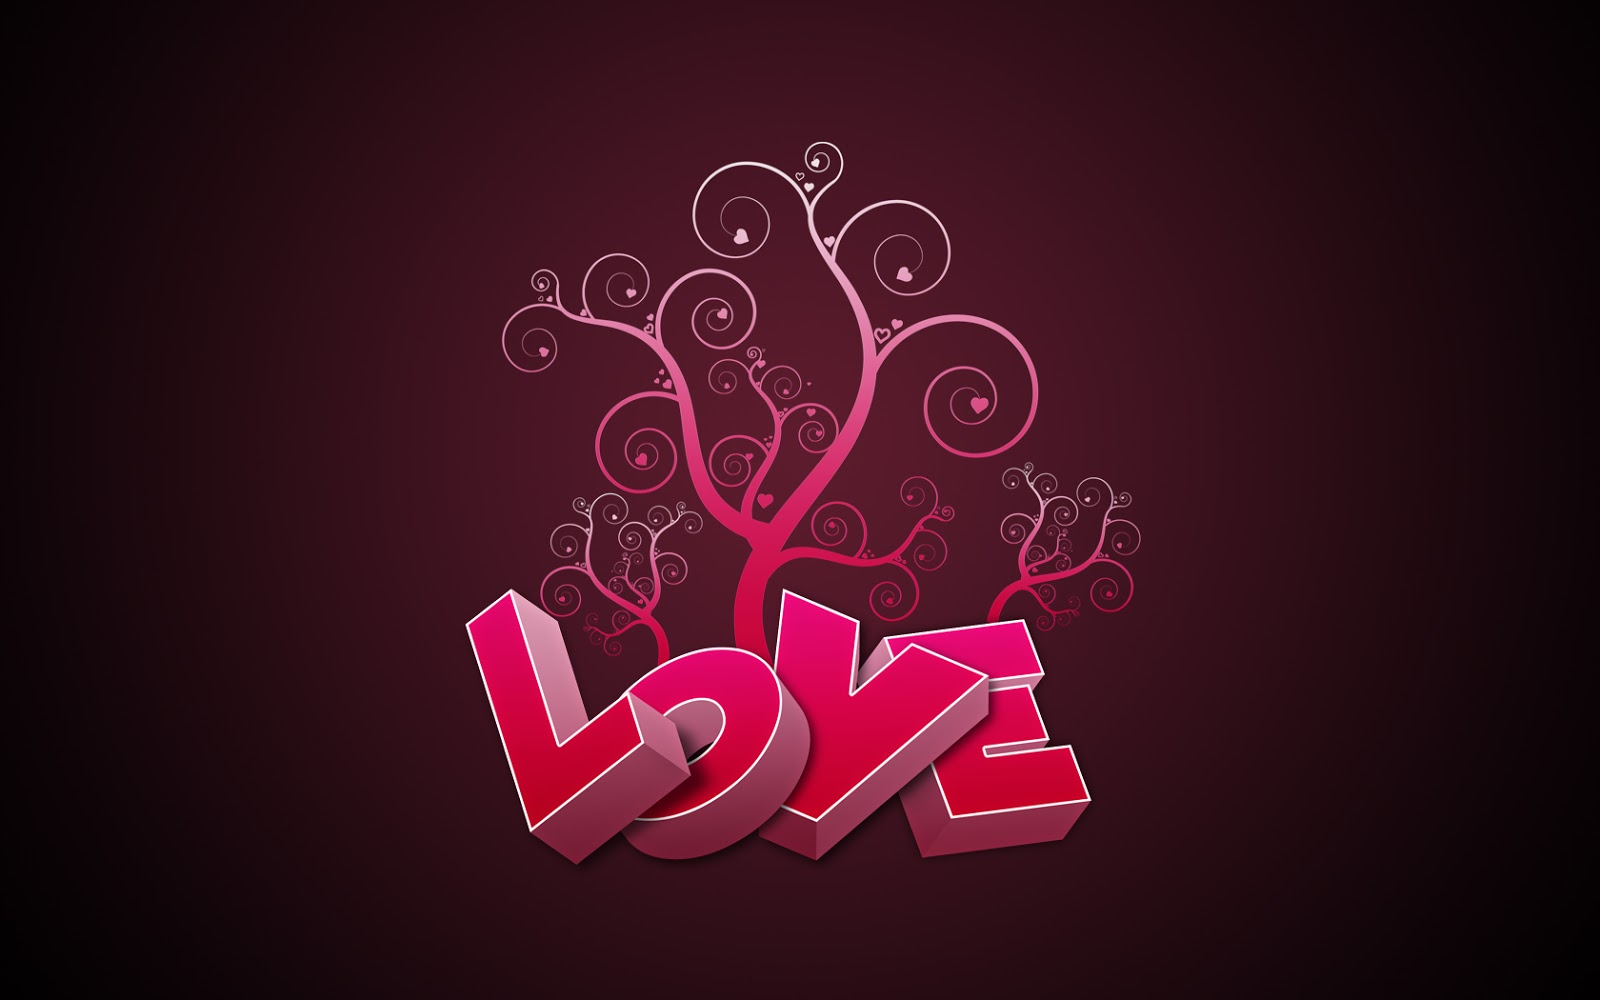 Love Ka Wallpaper Hd : Sms with Wallpapers: 12/28/13